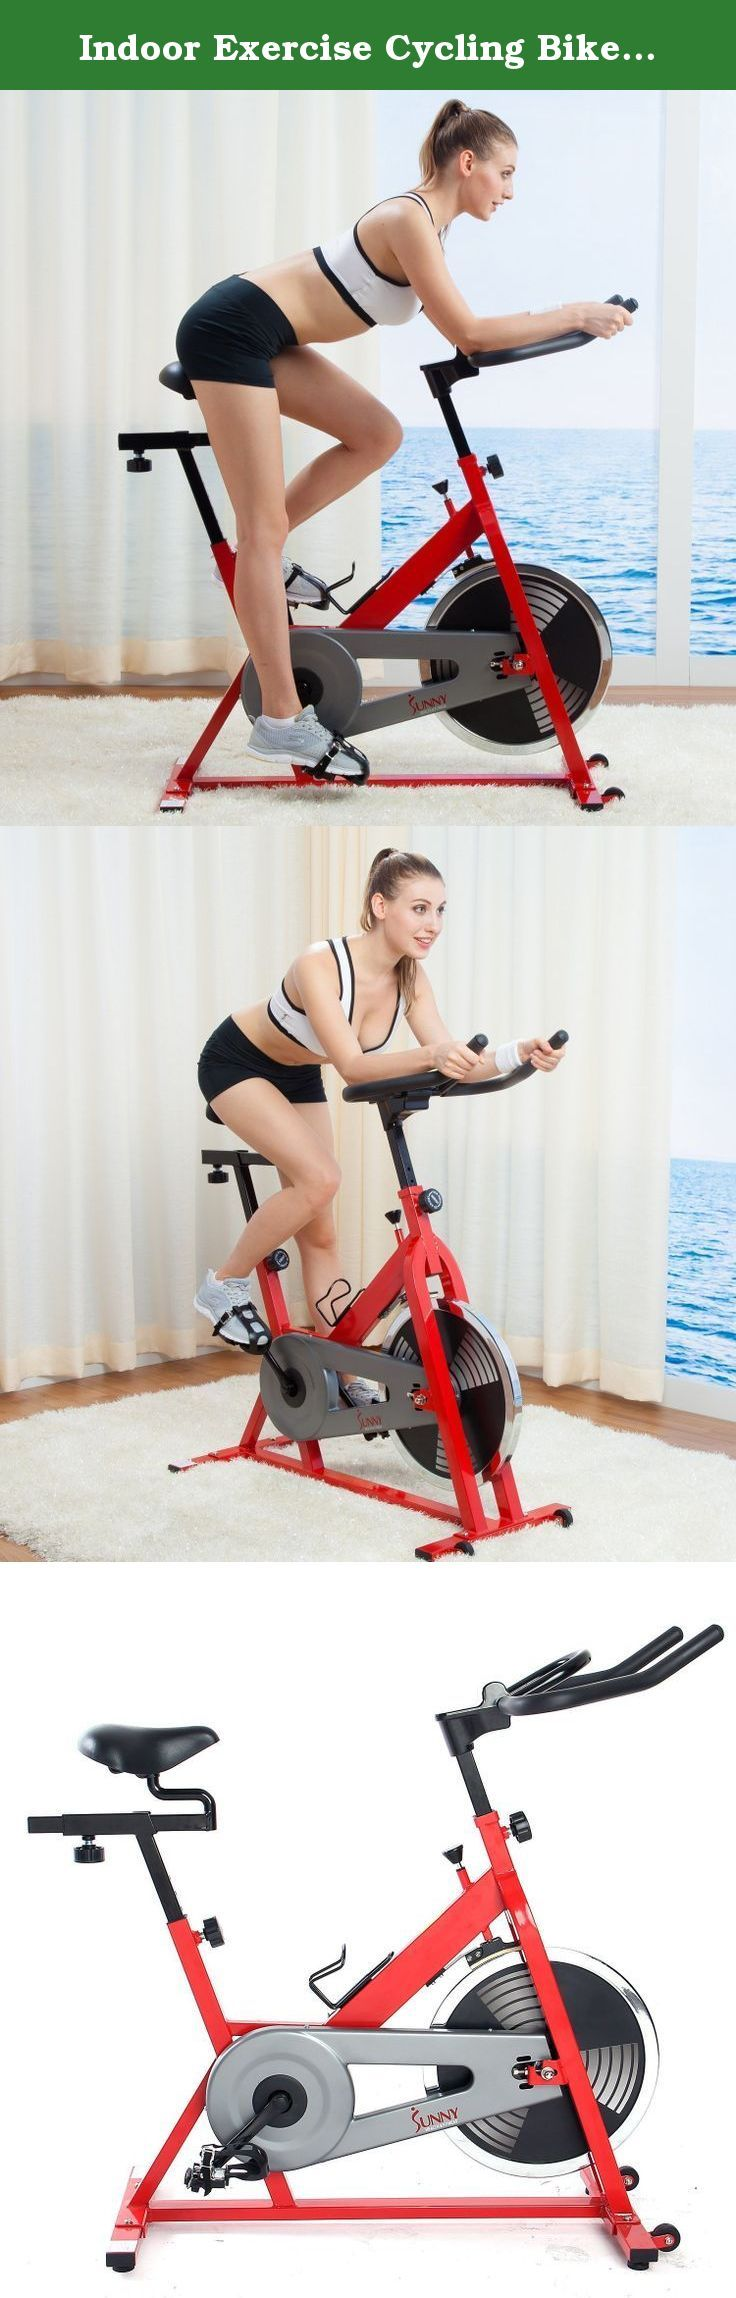 Indoor Exercise Cycling Bike Upright Top Seller Best Pricing- This Beautiful Portable Fitness Machine Will Melt Away Calories Fat Like Butter- Quiet Smooth Chain Drive Makes Spinning Simple Eassy Fun. Cycle your way to fitness on this heavy-duty indoor cycling bike from Sunny Health Fitness. Adjustable handlebars and seat let you fit this bike to your own stature, and adjustable resistance makes it possible to switch up your workout as you please. The heavy-duty steel frame of this indoor...